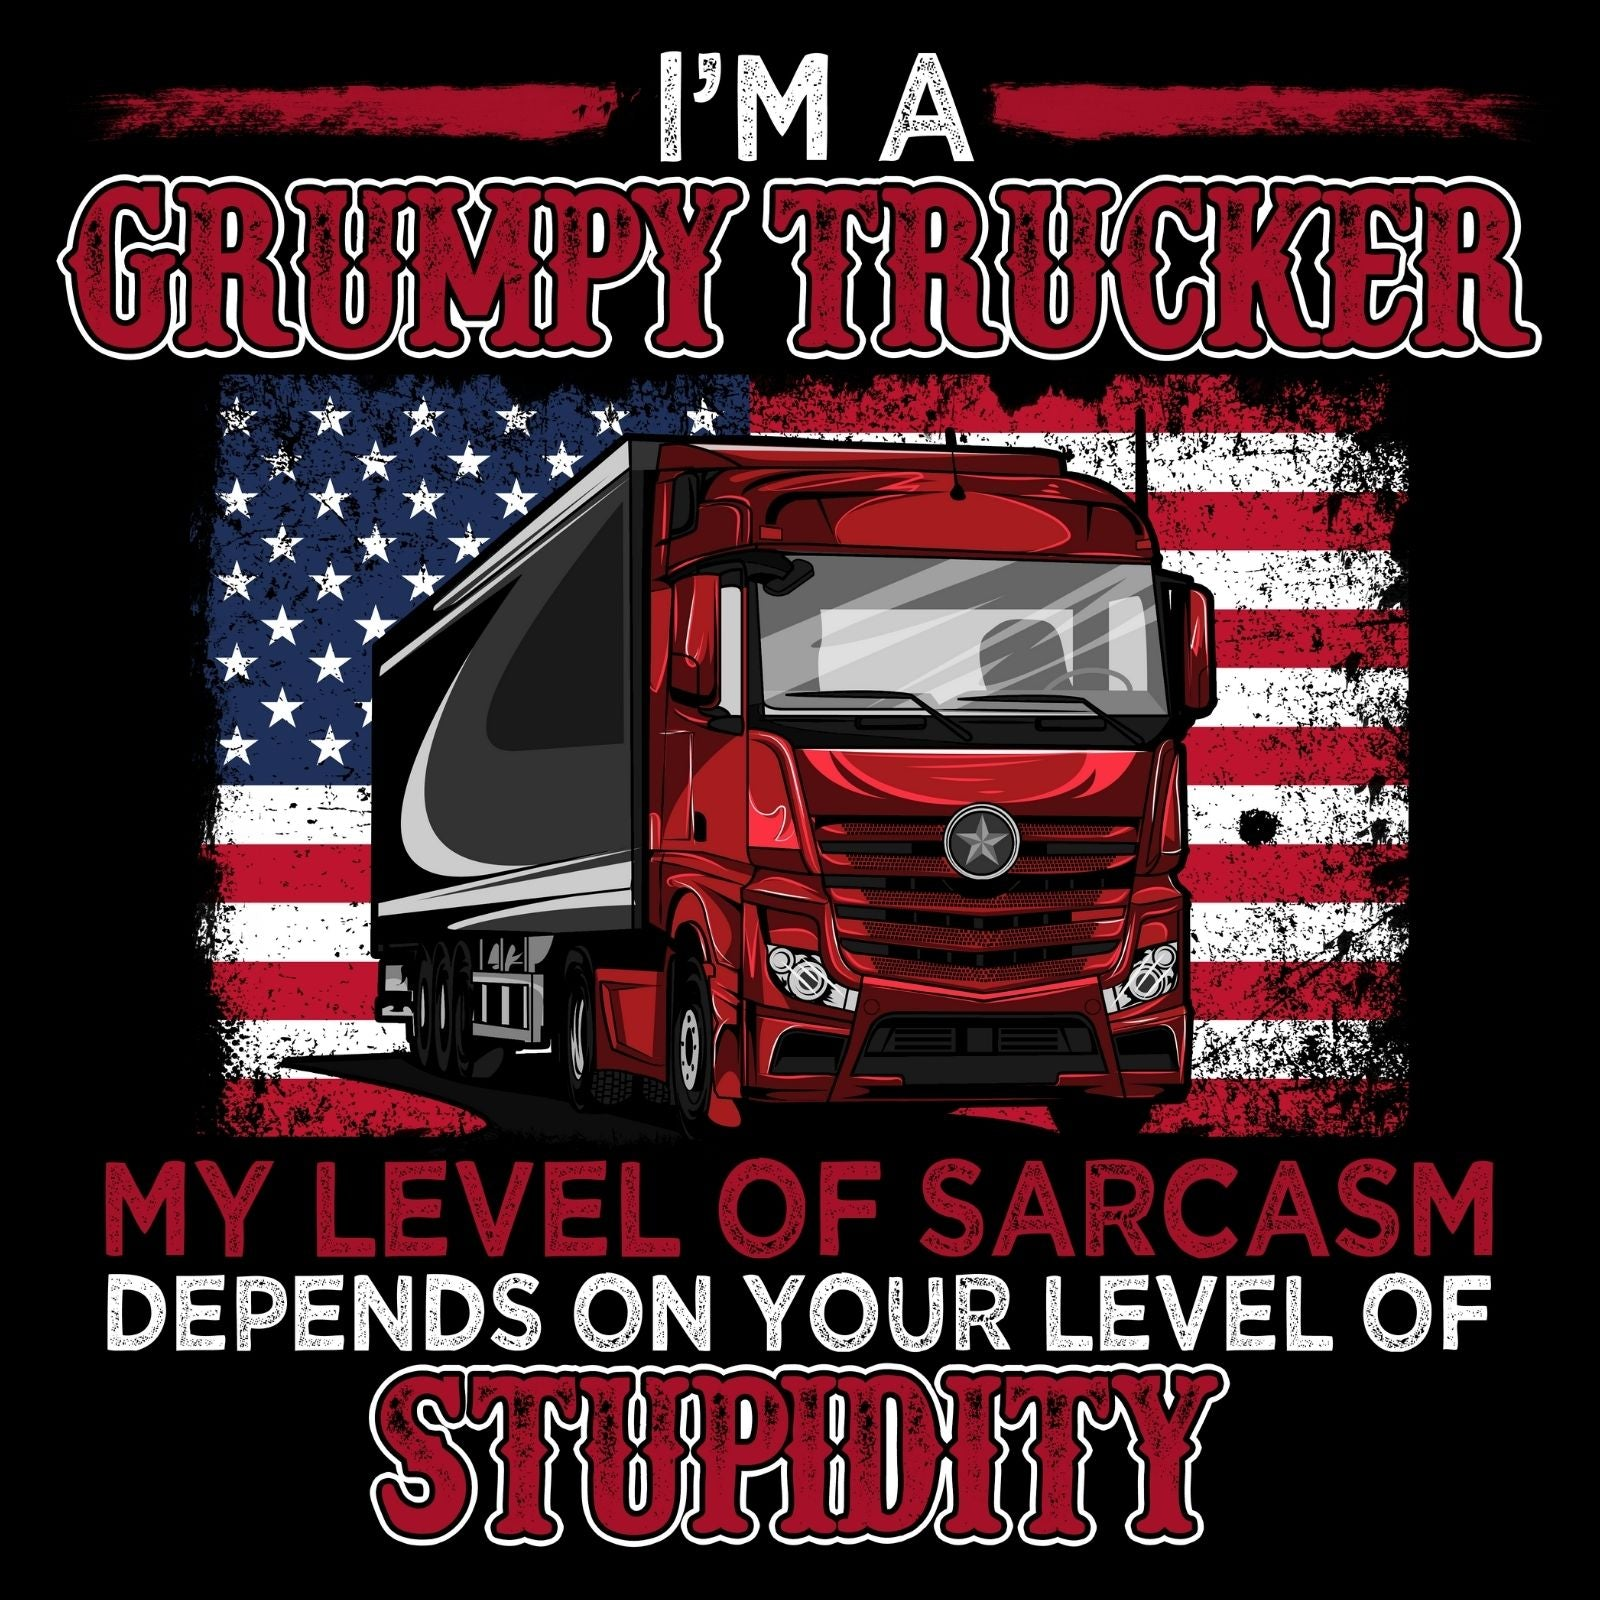 I'm A Grumpy Trucker My Level Of Sarcasm Depends On Your Level Of Stupidity - Bastard Graphics